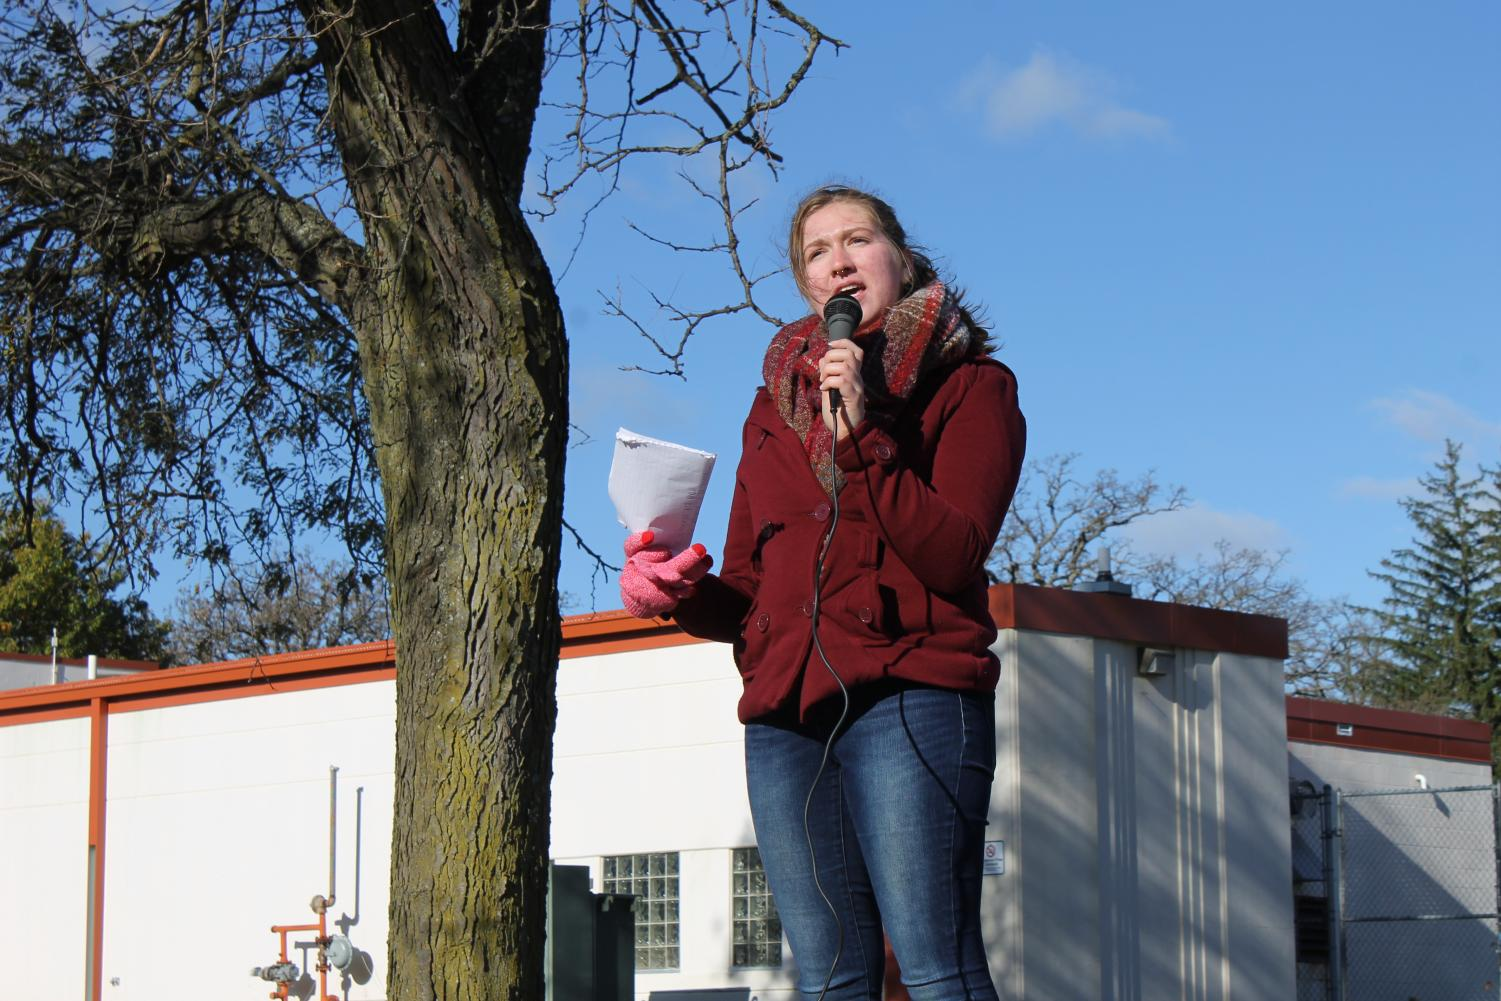 Jacey Davis ('21) organized and spoke at Luther's NEDA walk on Oct. 20.